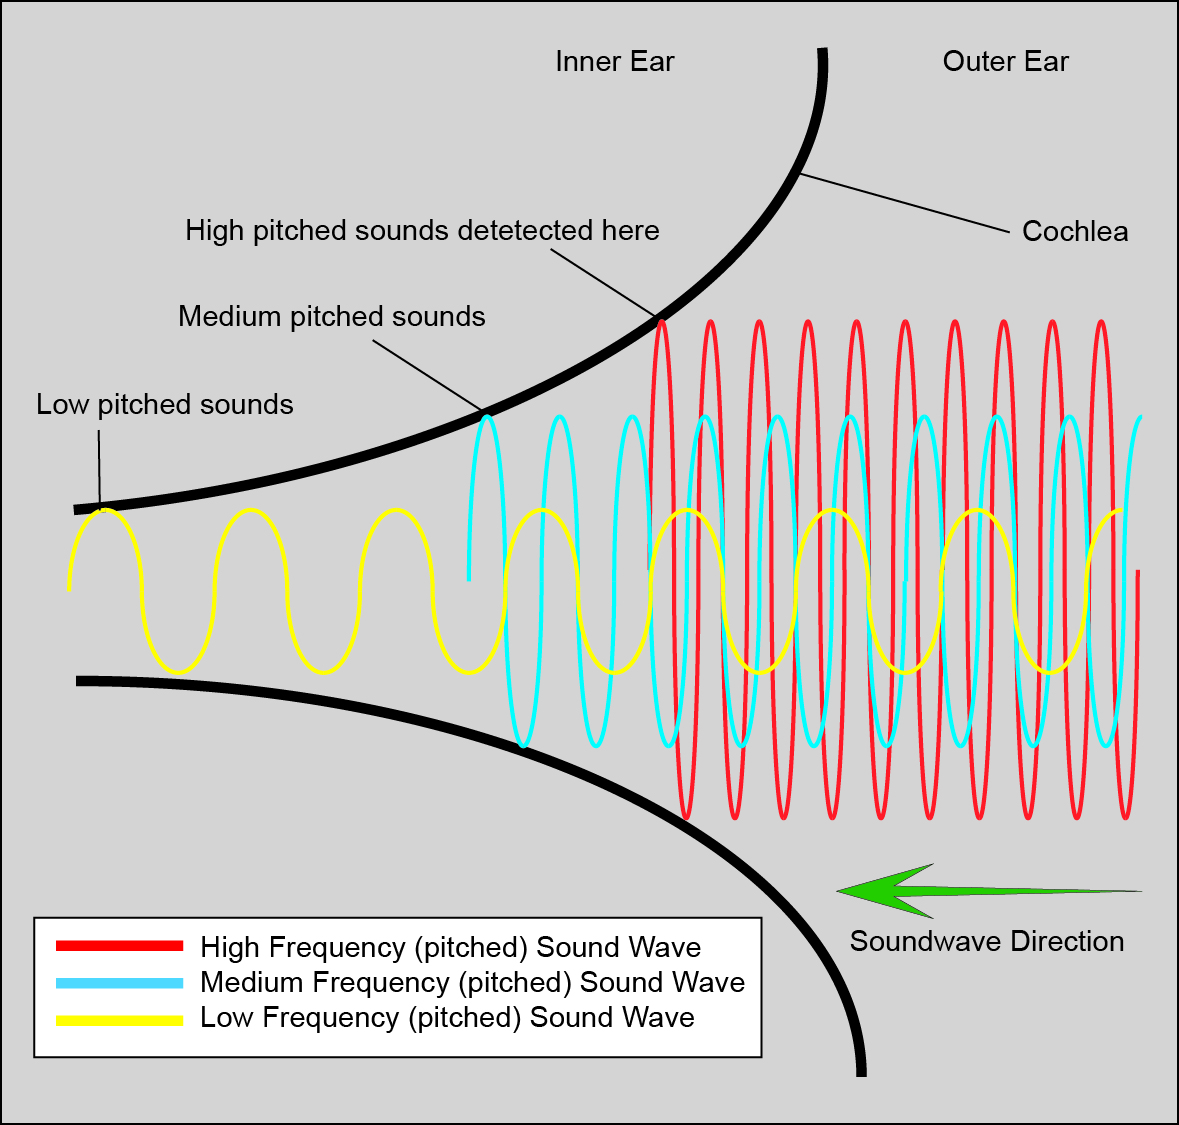 Plot Diagram Poster: Cochlear Function Diagram.jpg - Wikimedia Commons,Chart